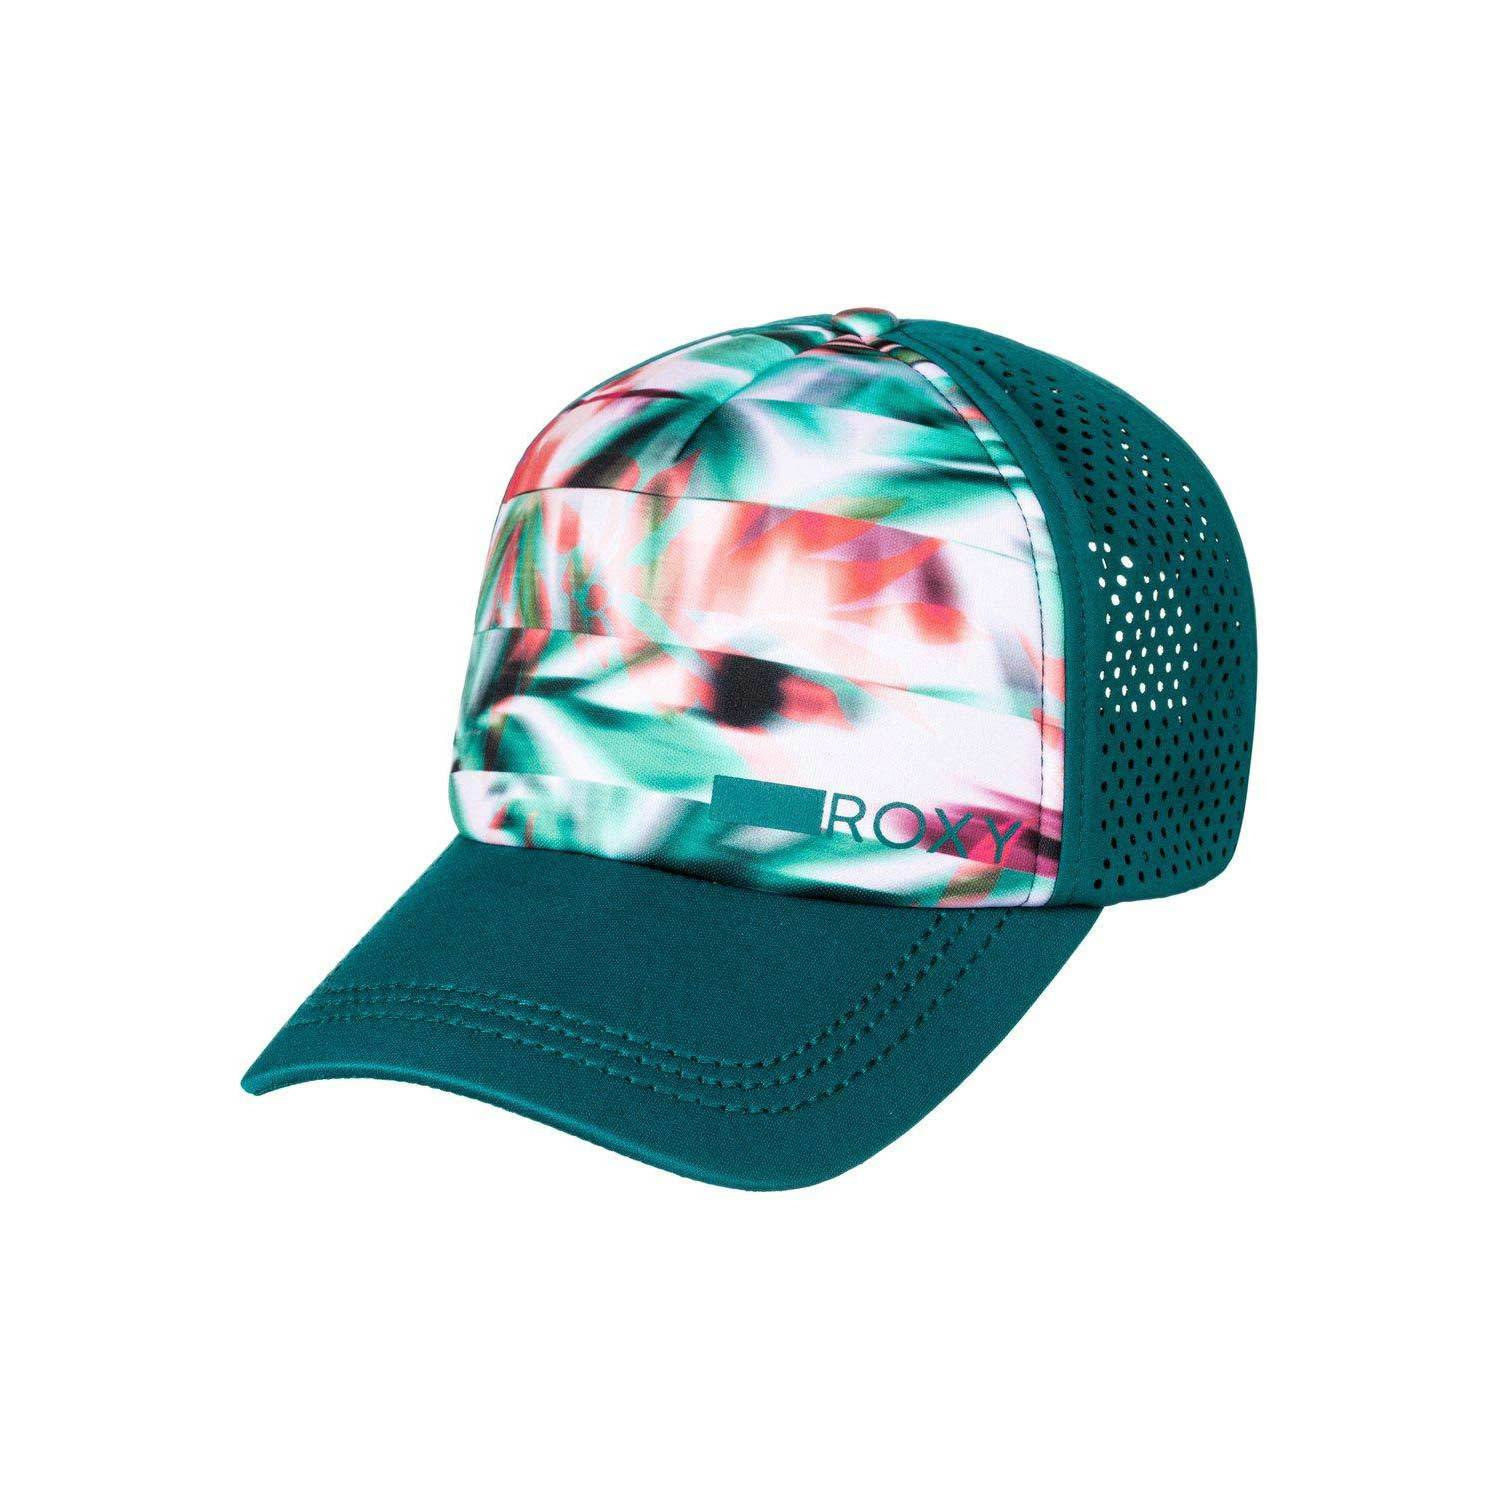 4db88e6b758aa ROXY Women s Waves Machine Hat